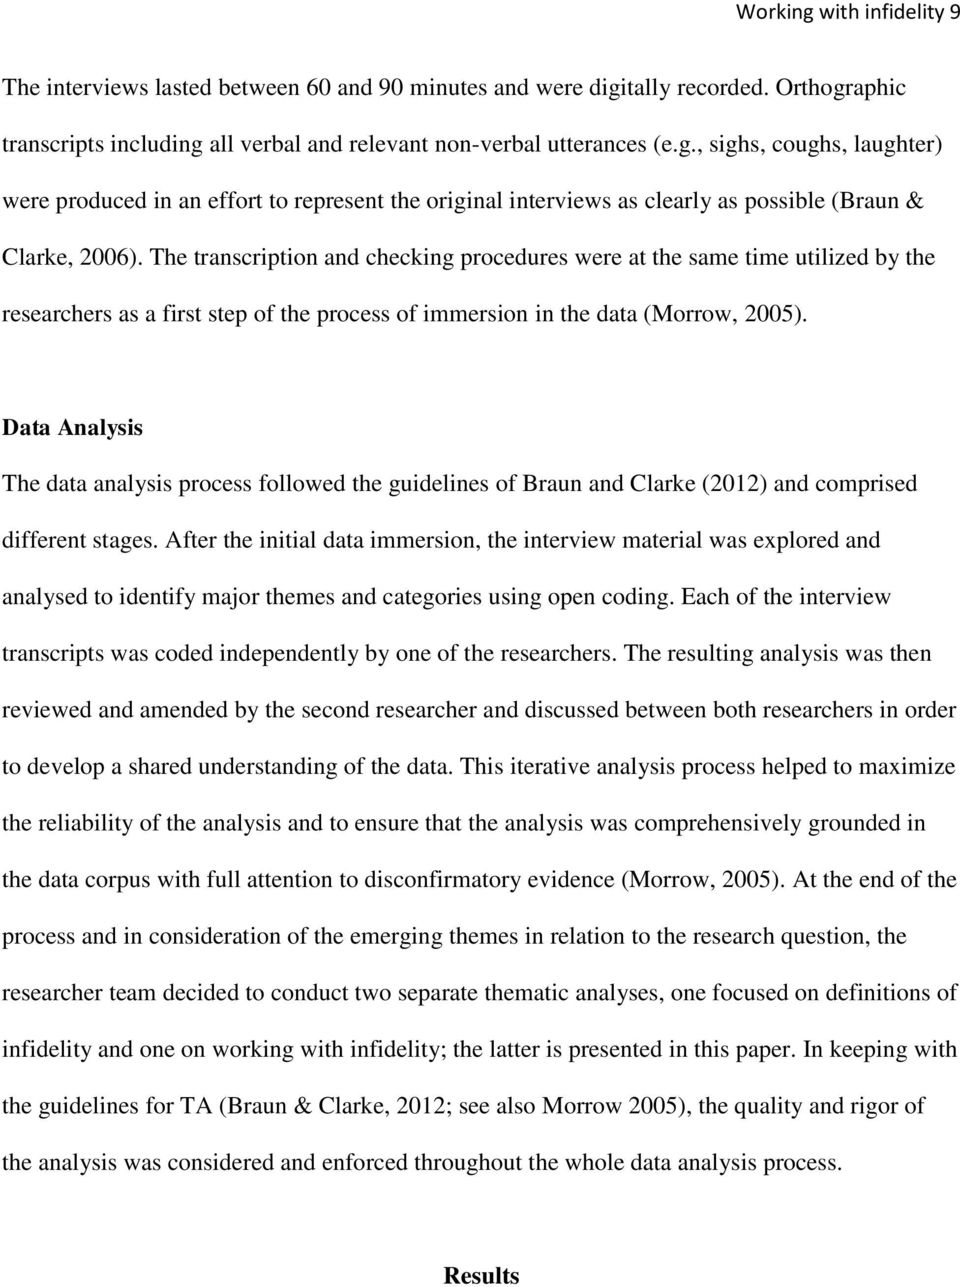 Data Analysis The data analysis process followed the guidelines of Braun and Clarke (2012) and comprised different stages.